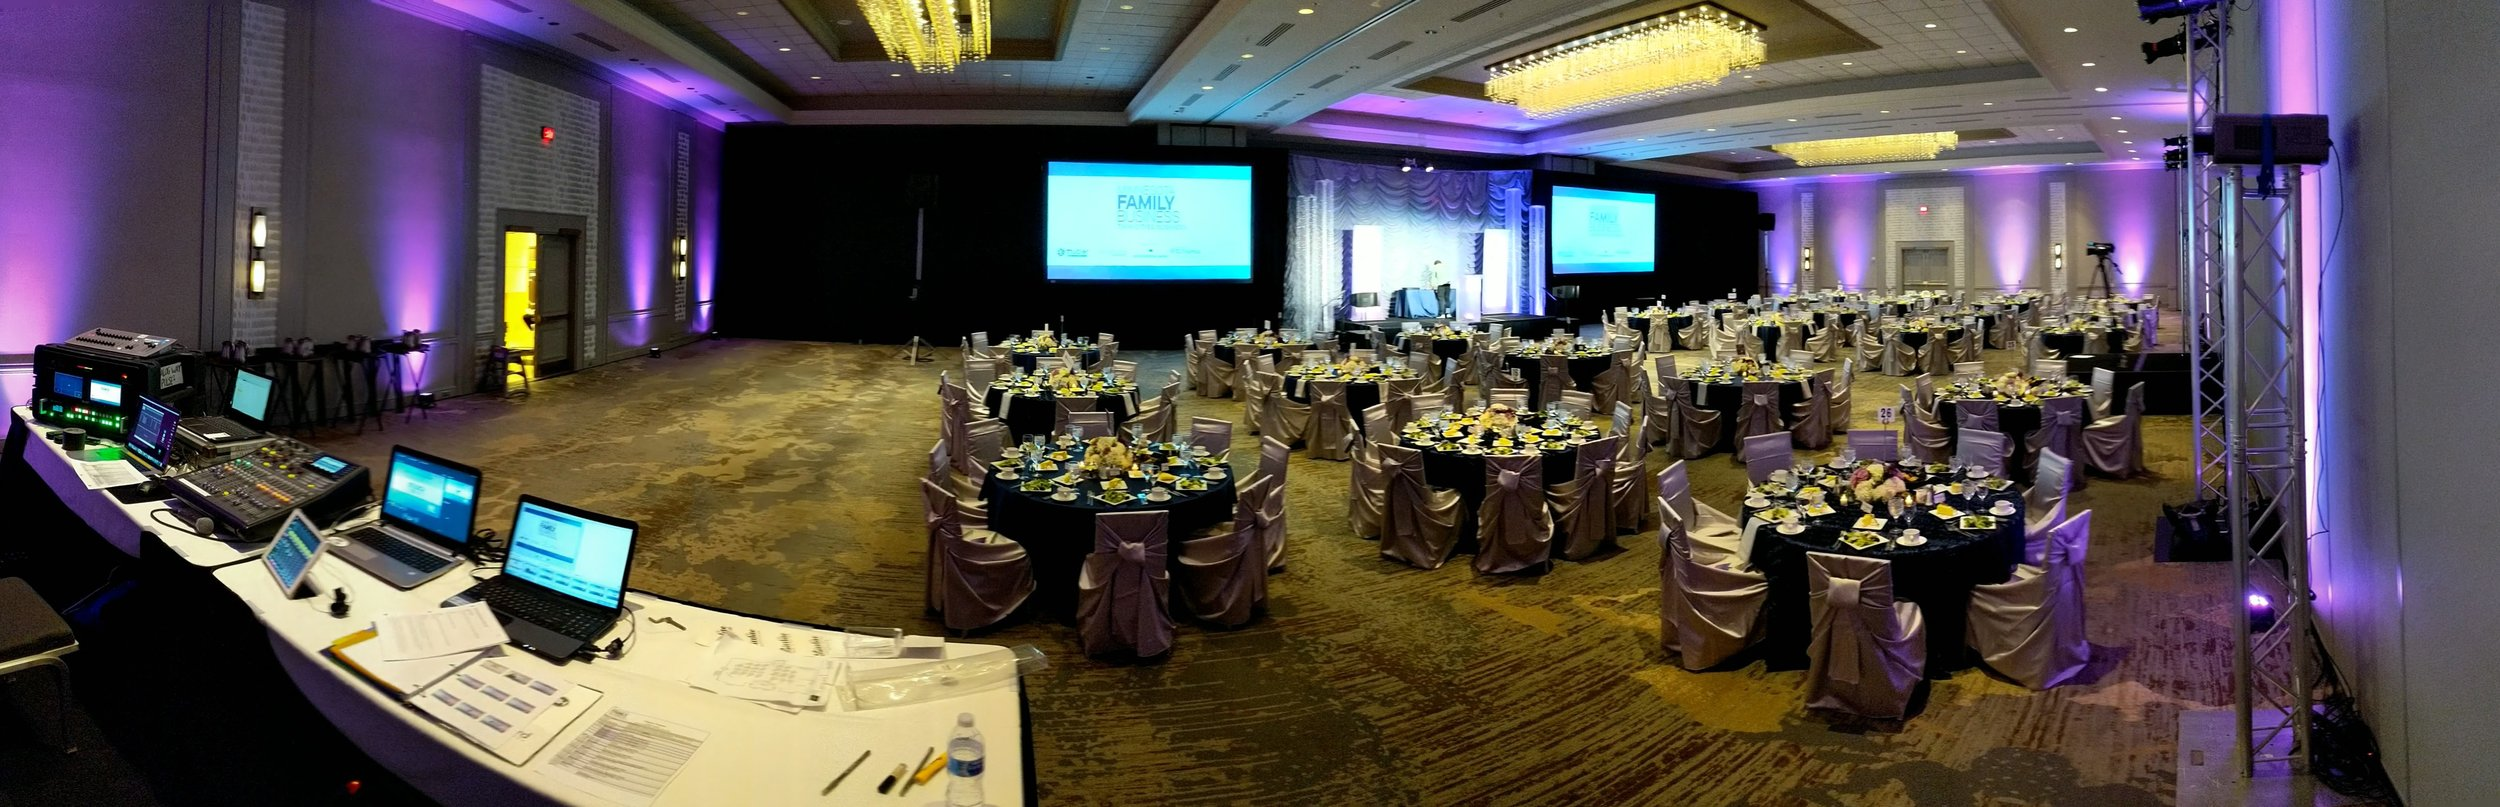 Picture of AV for You rental equipment at the Family Business Awards in the Hilton Mpls